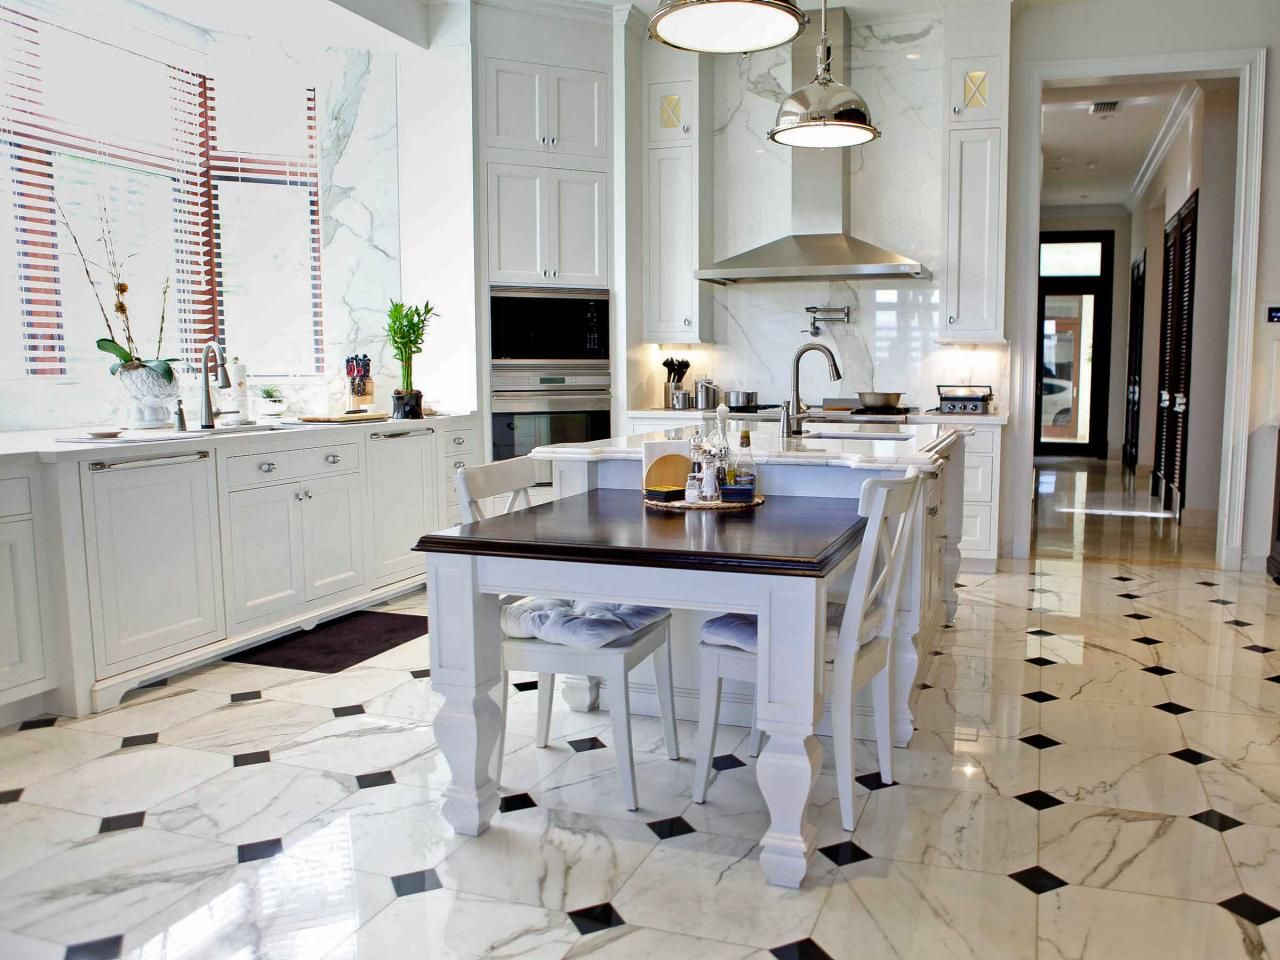 black and white kitchen floor tile ideas - Ideas For Kitchen Floors